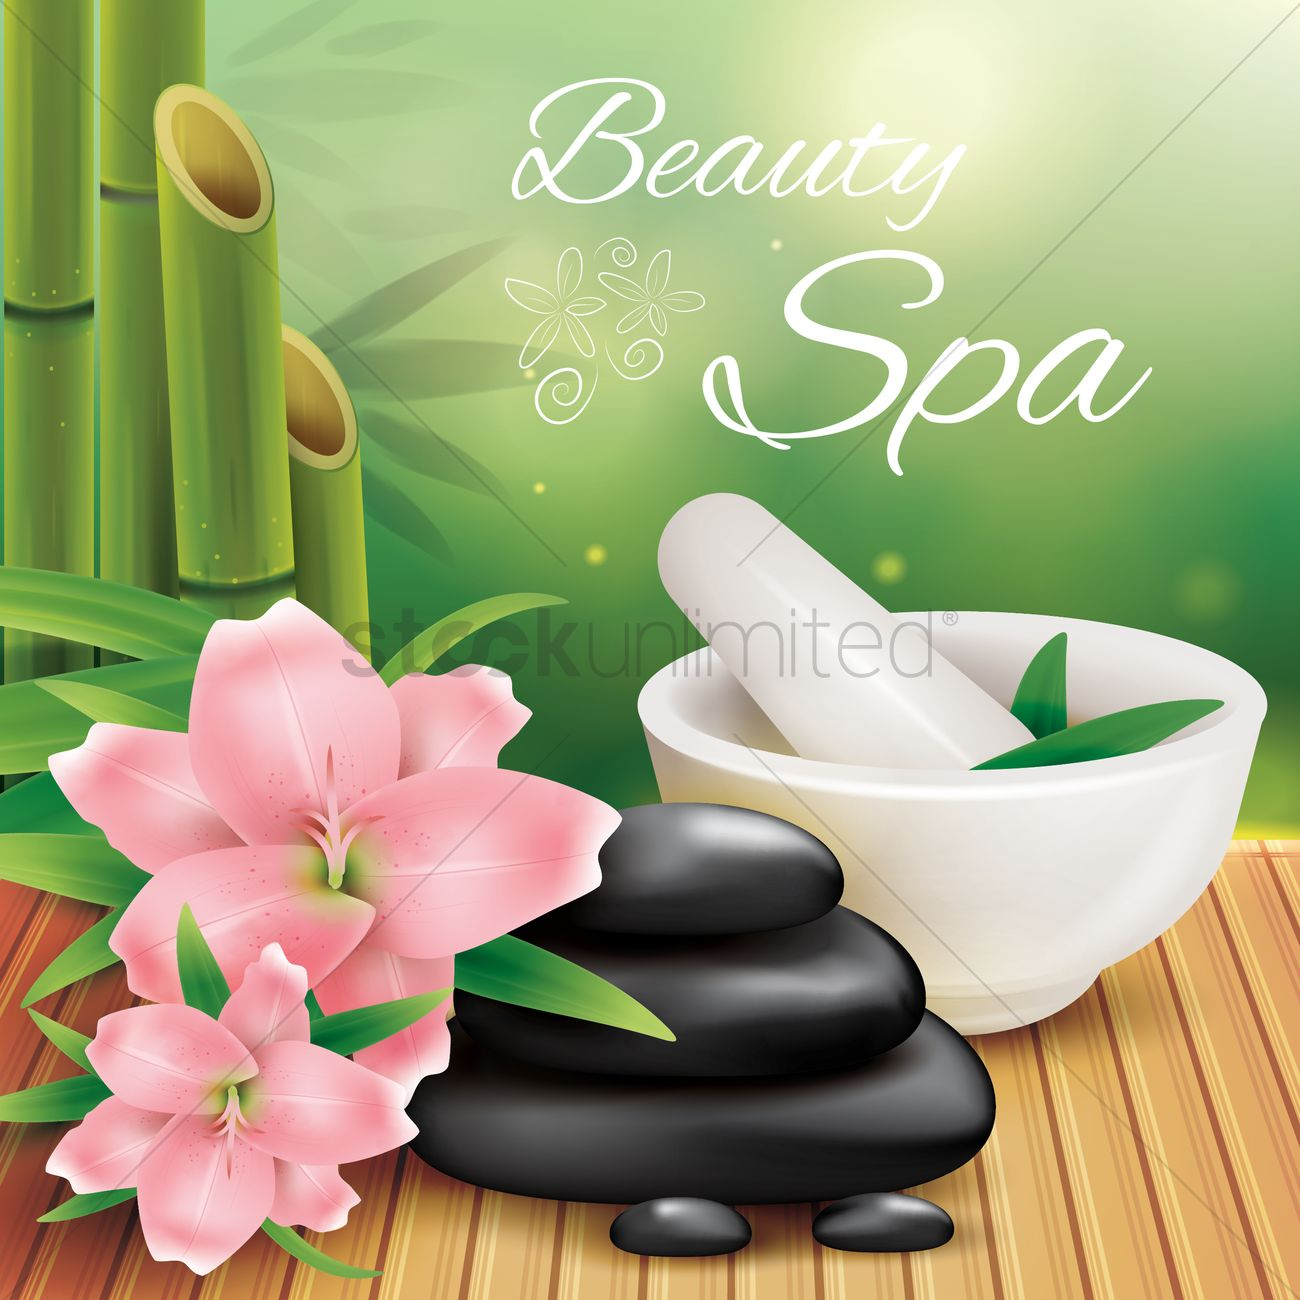 Beauty spa background vector image 1811955 stockunlimited - Articulos para spa ...